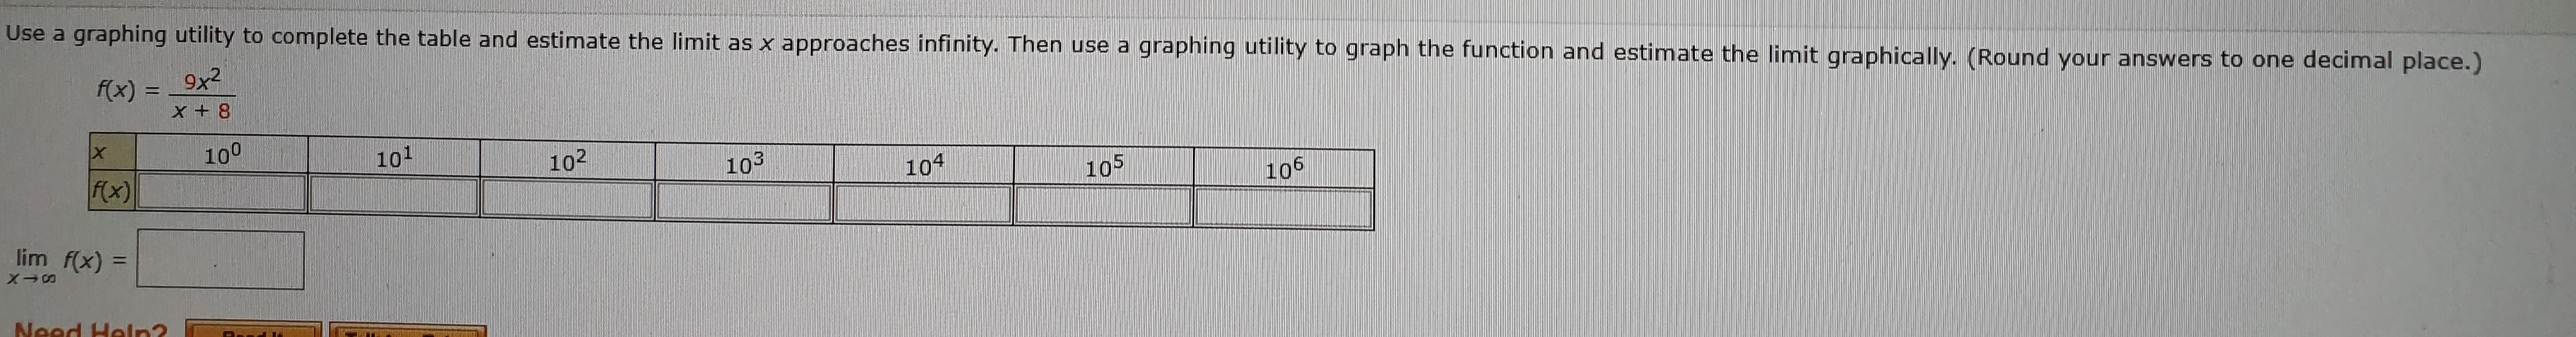 Use a graphing utility to complete the table and estimate the limit as x approaches infinity. Then use a 9x2 graphing utility to graph the function and estimate the limit graphically. (Round your answers to one decimal place.) f(x) 8 +X 100 101 102 103 Fx) 104 105 106 lim f(x) Noed Holrn2